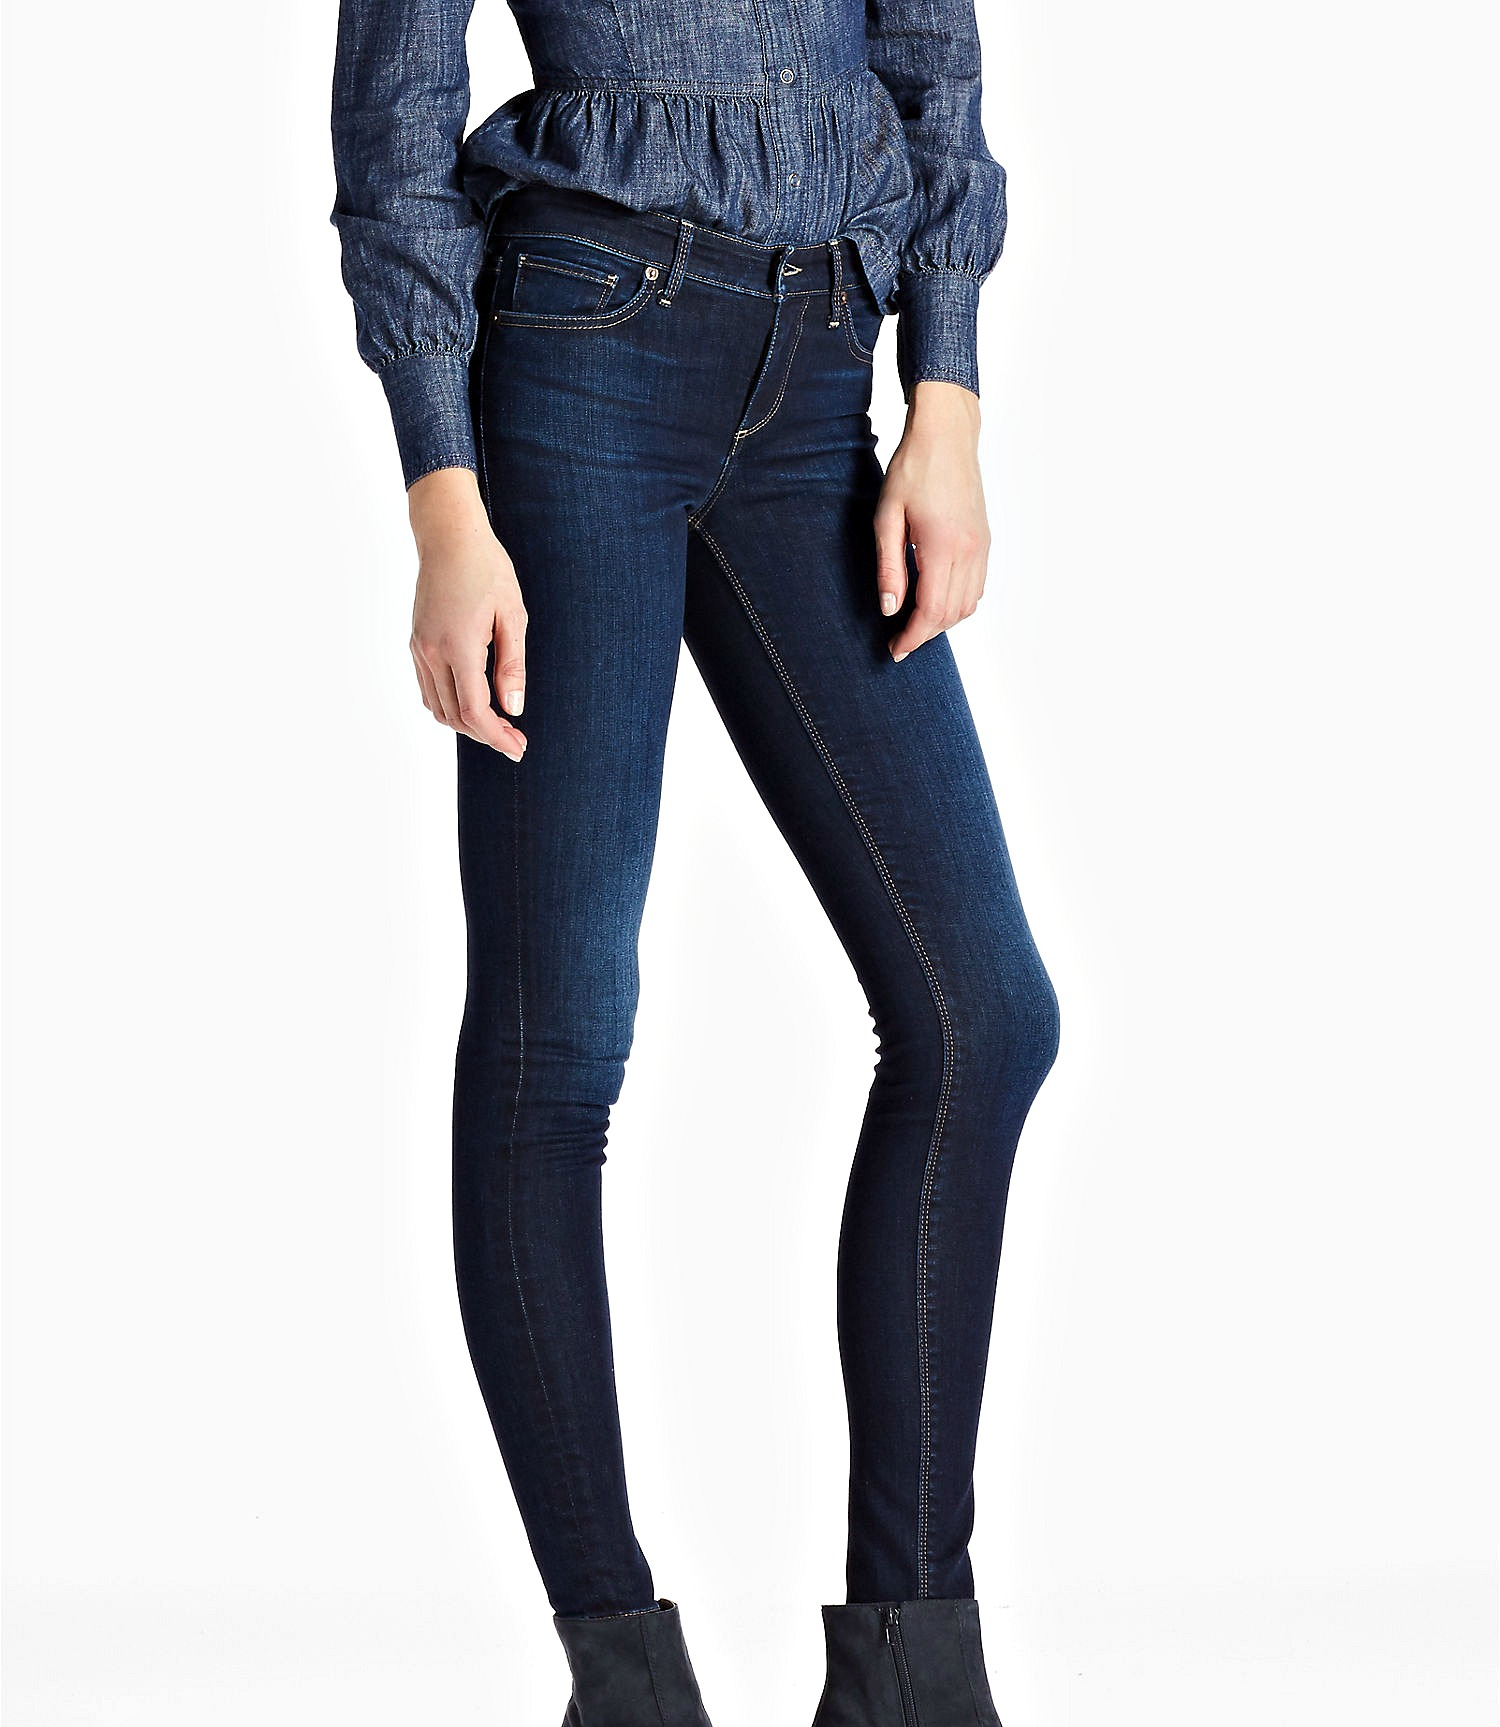 Skinny Best jeans for moms pictures recommend to wear in summer in 2019